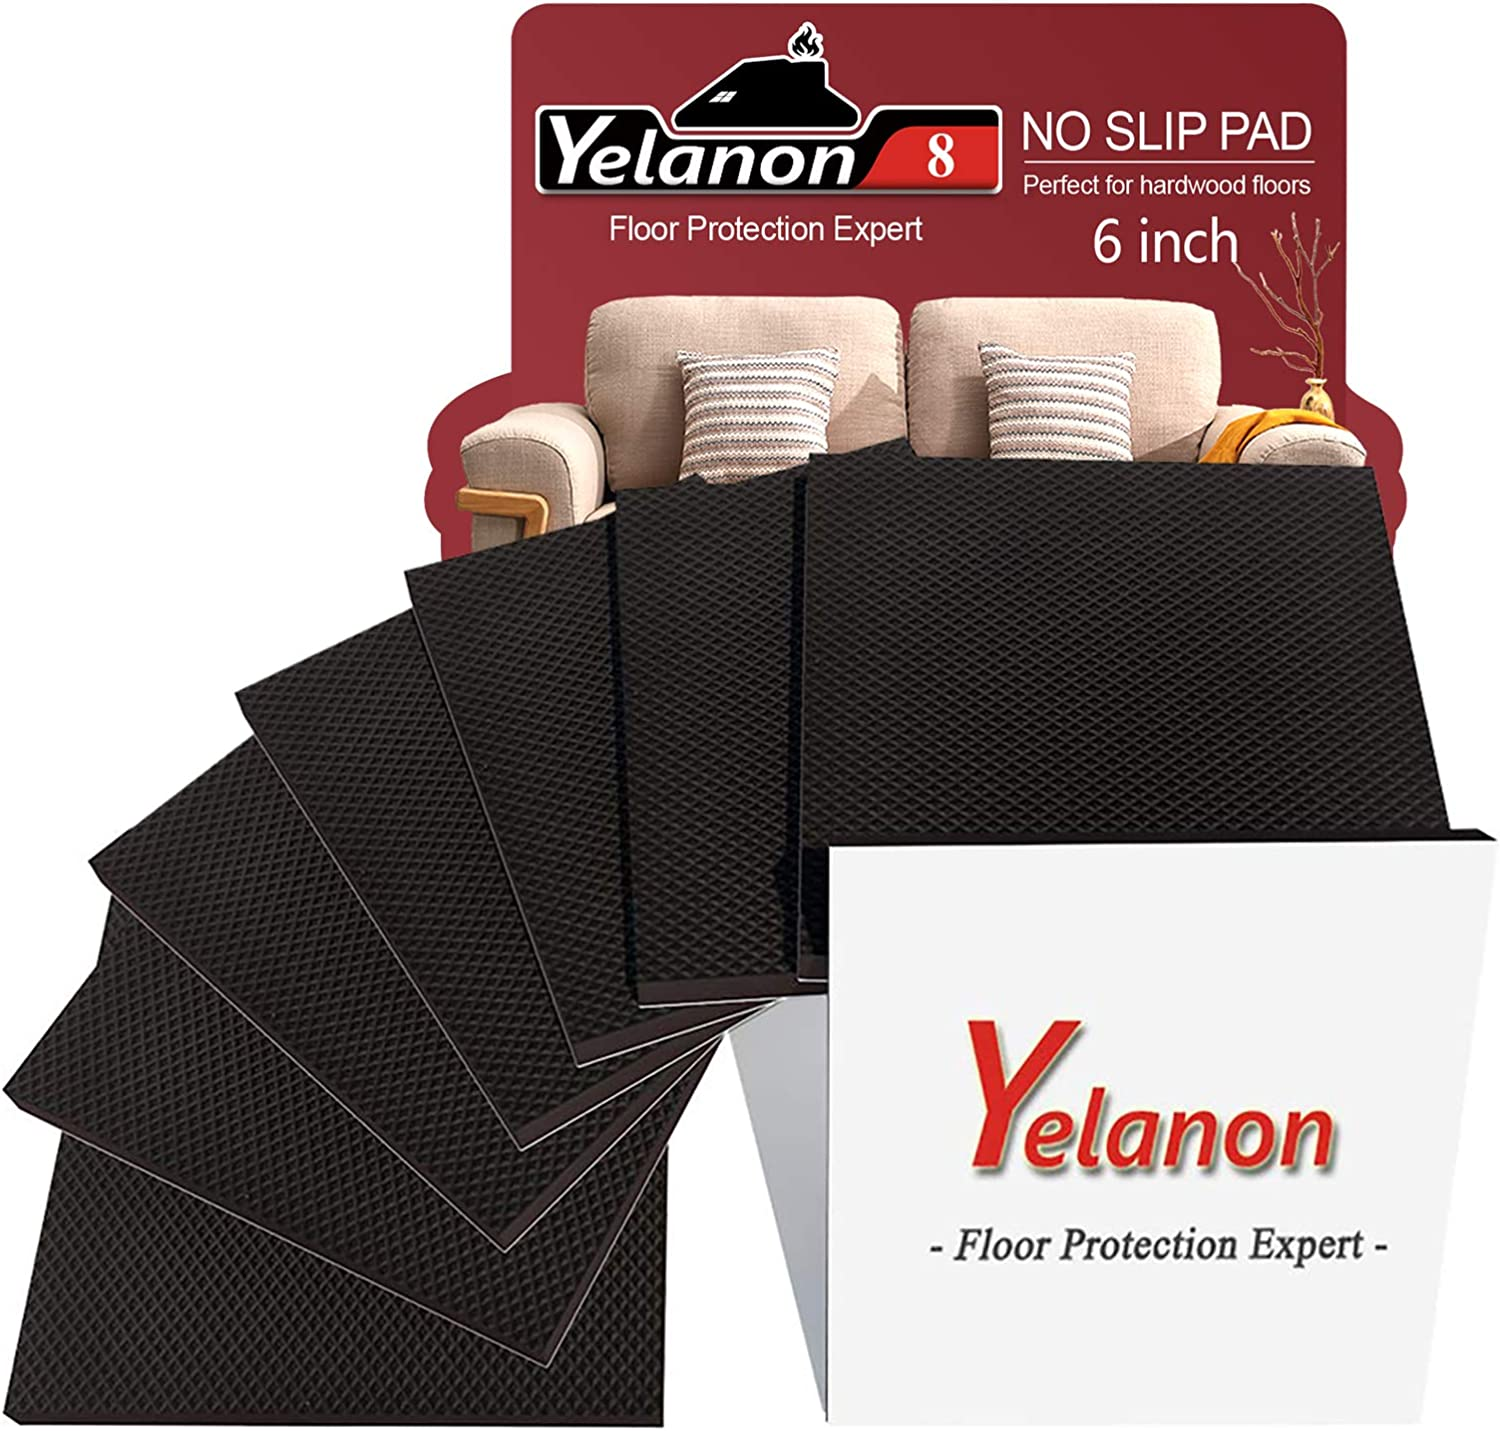 Yelanon Furniture Pads 8 Pcs 6'' Non Slip Furniture Pads Self Stick Hardwood Floor Protectors for Furniture Large Square Rubber Feet Furniture Grippers Chair Leg Floor Protectors Cut into Any Shape